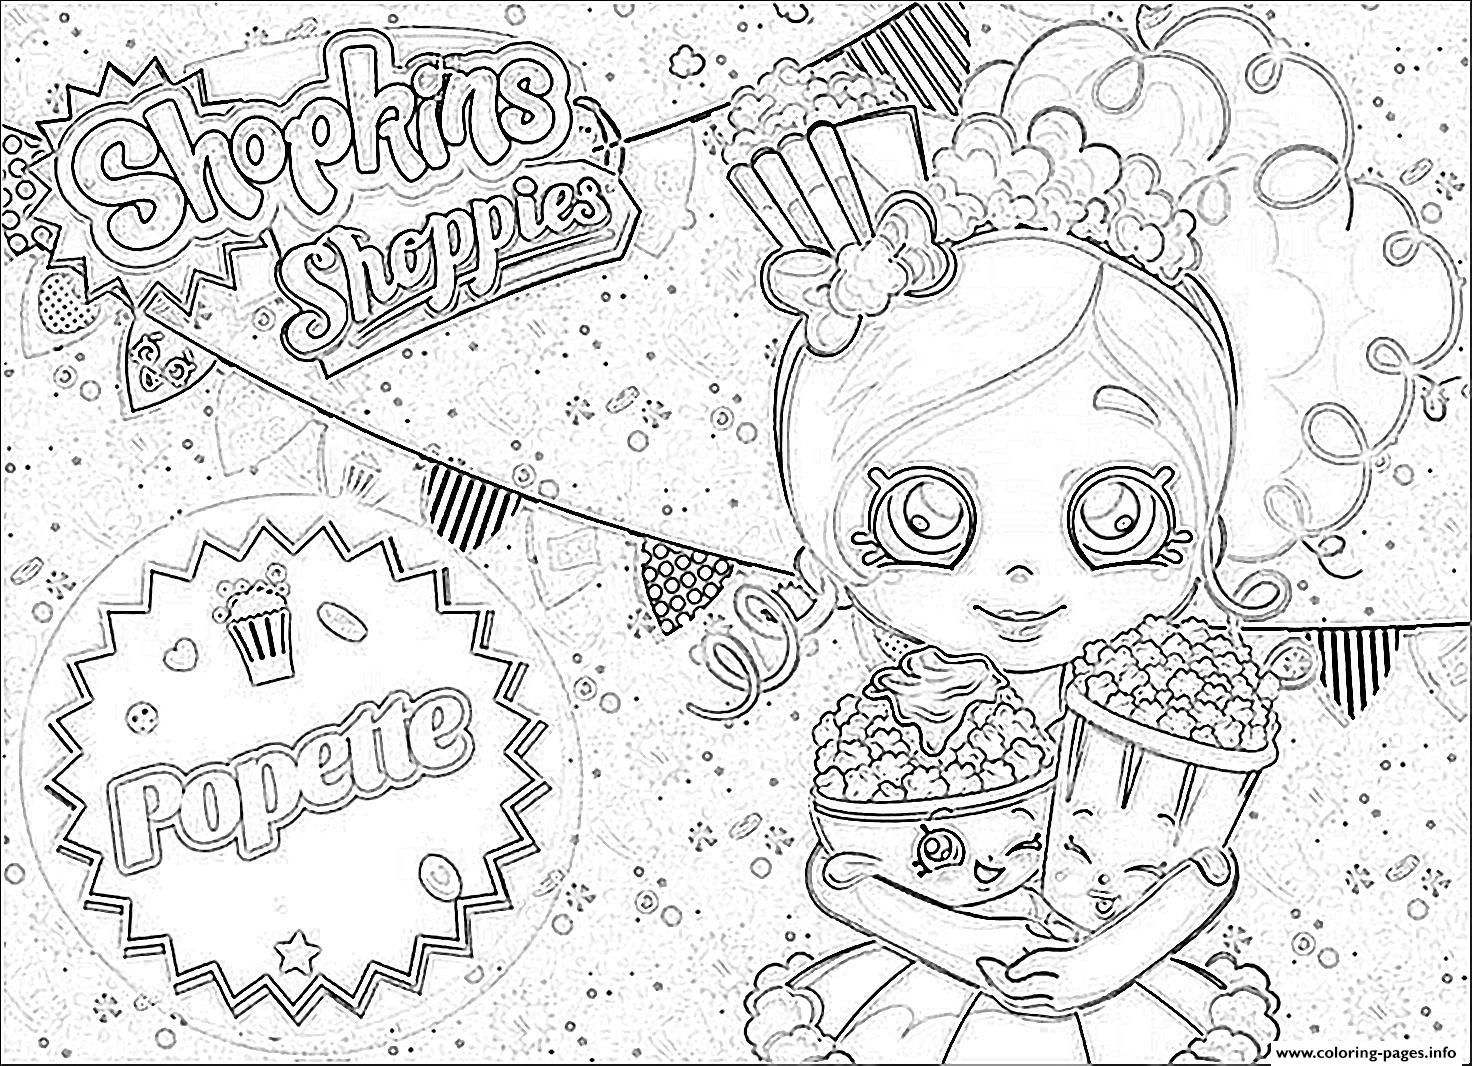 Shopkins Popette Official Coloring Pages Free Printable Color